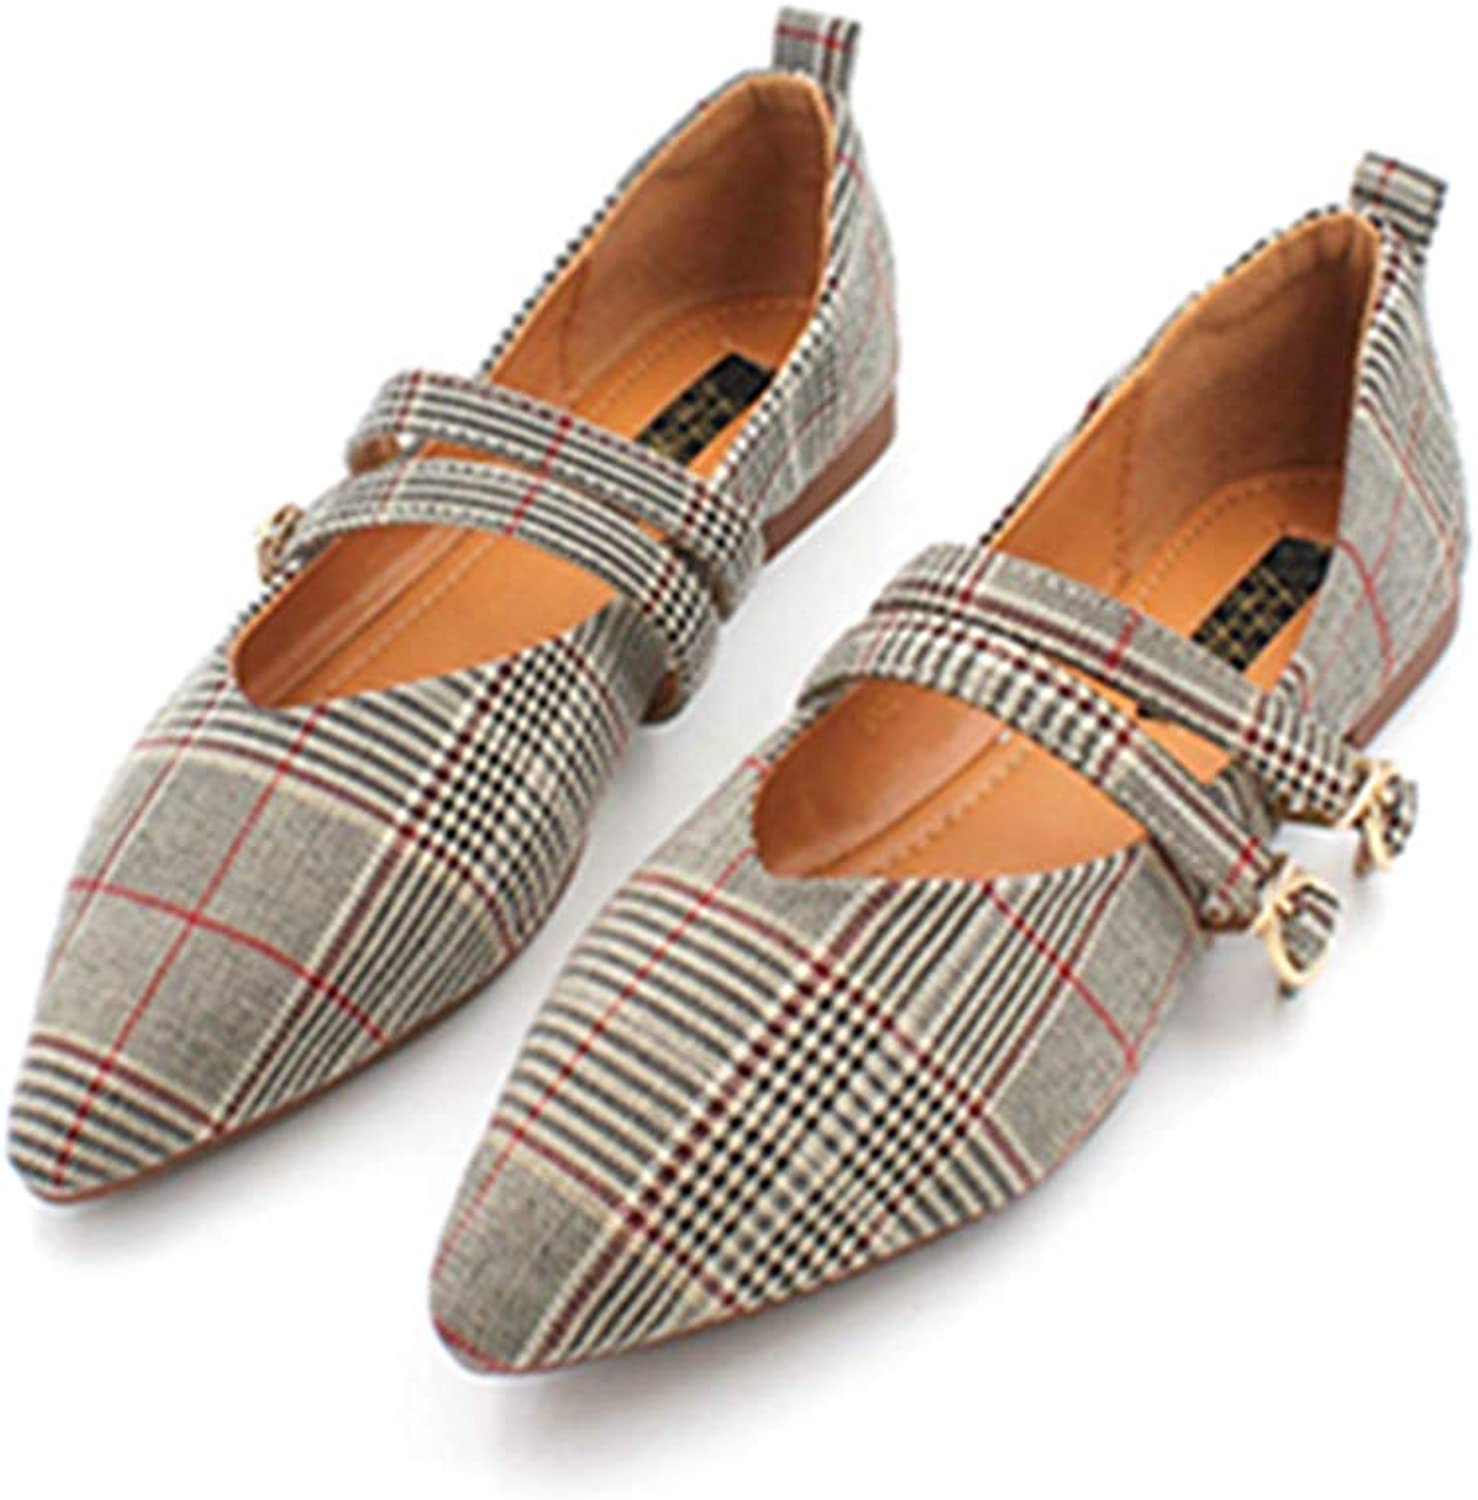 Kyle Walsh Pa Women Flats shoes Plaid Strap Buckle Pointed Toe British Style Ladies Fashion Footwear